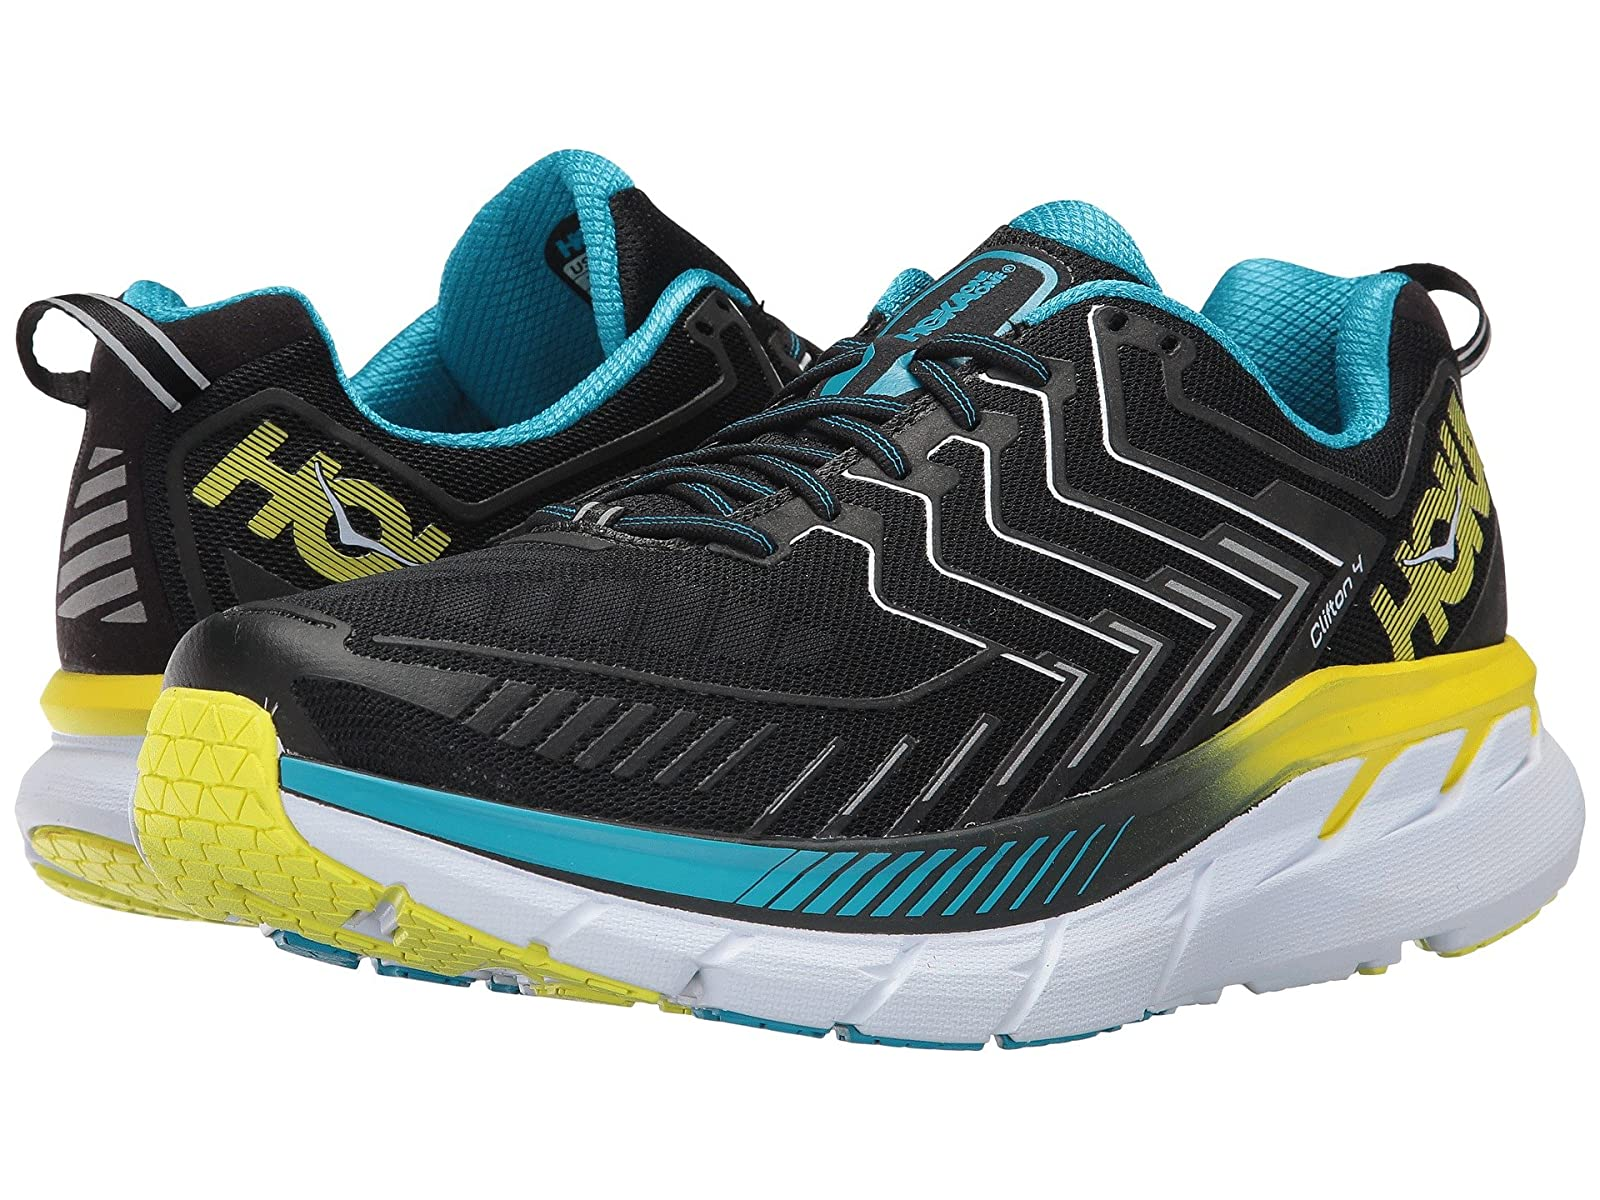 Hoka One One Clifton 4Atmospheric grades have affordable shoes